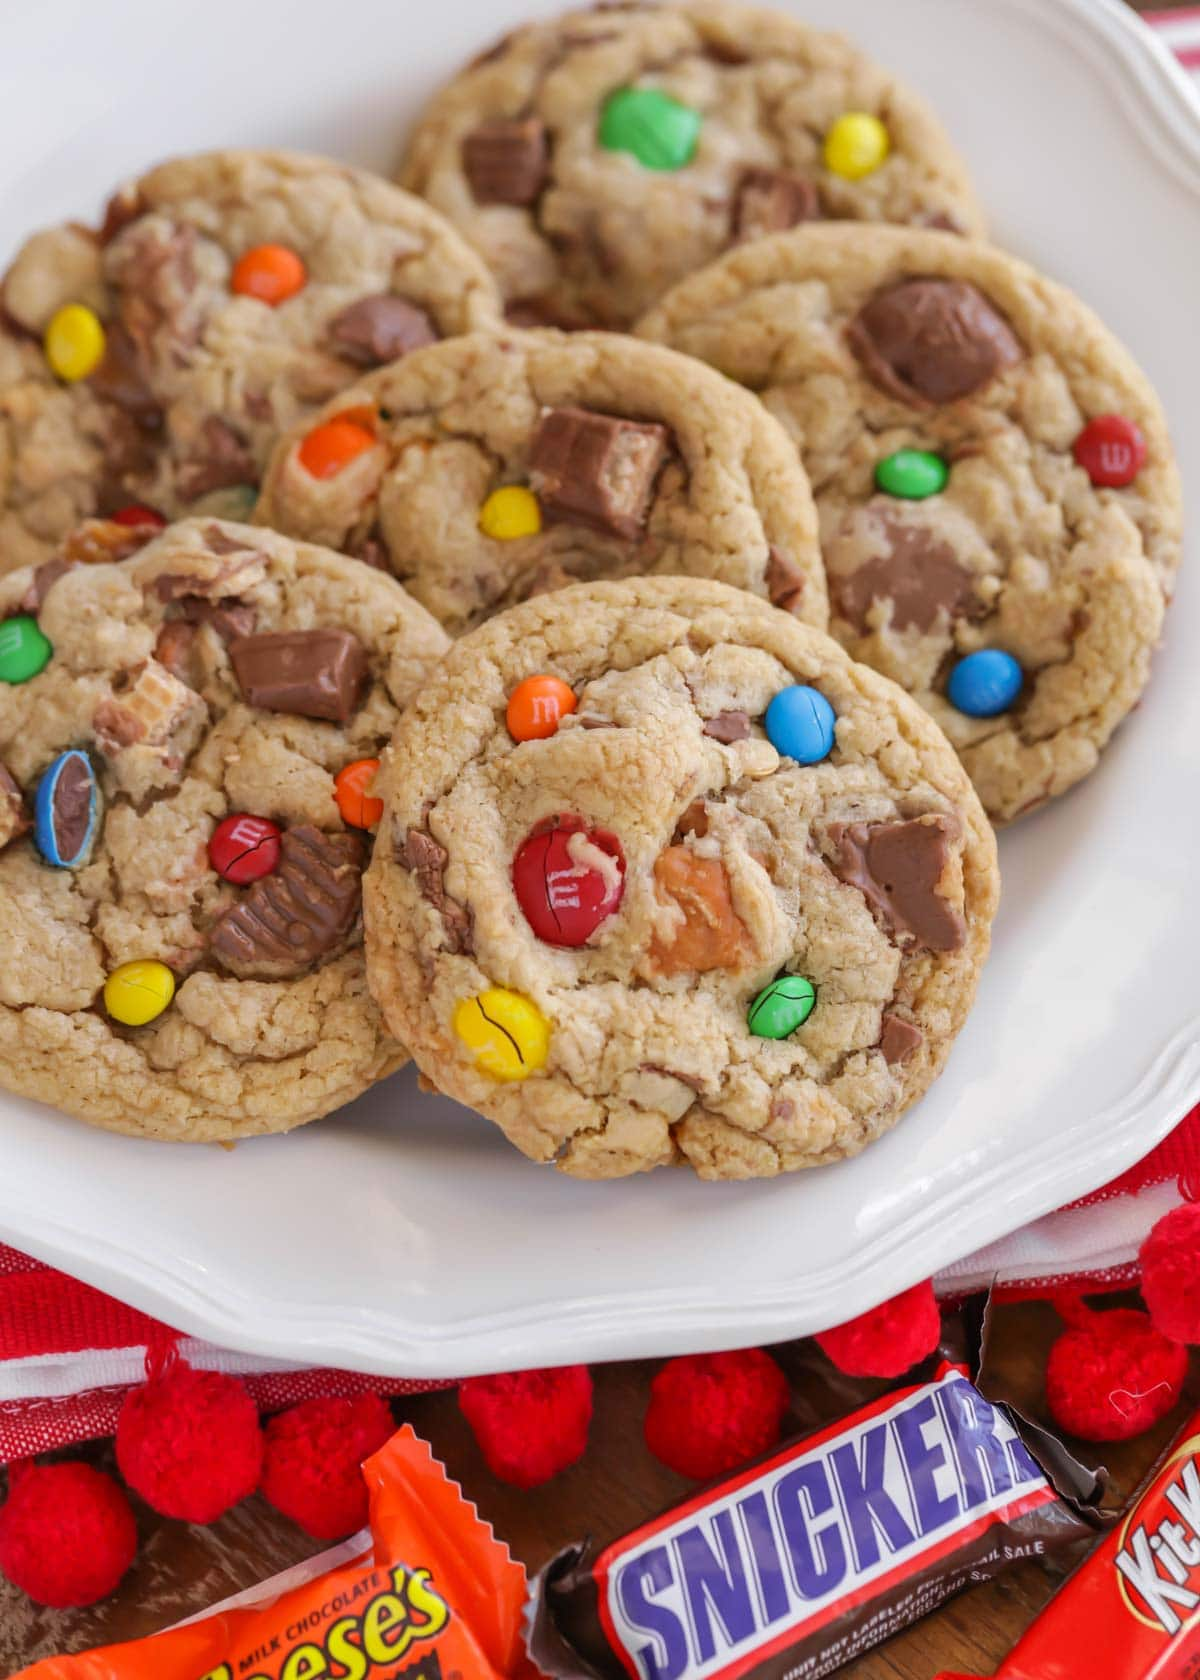 White plate filled with candy bar cookies